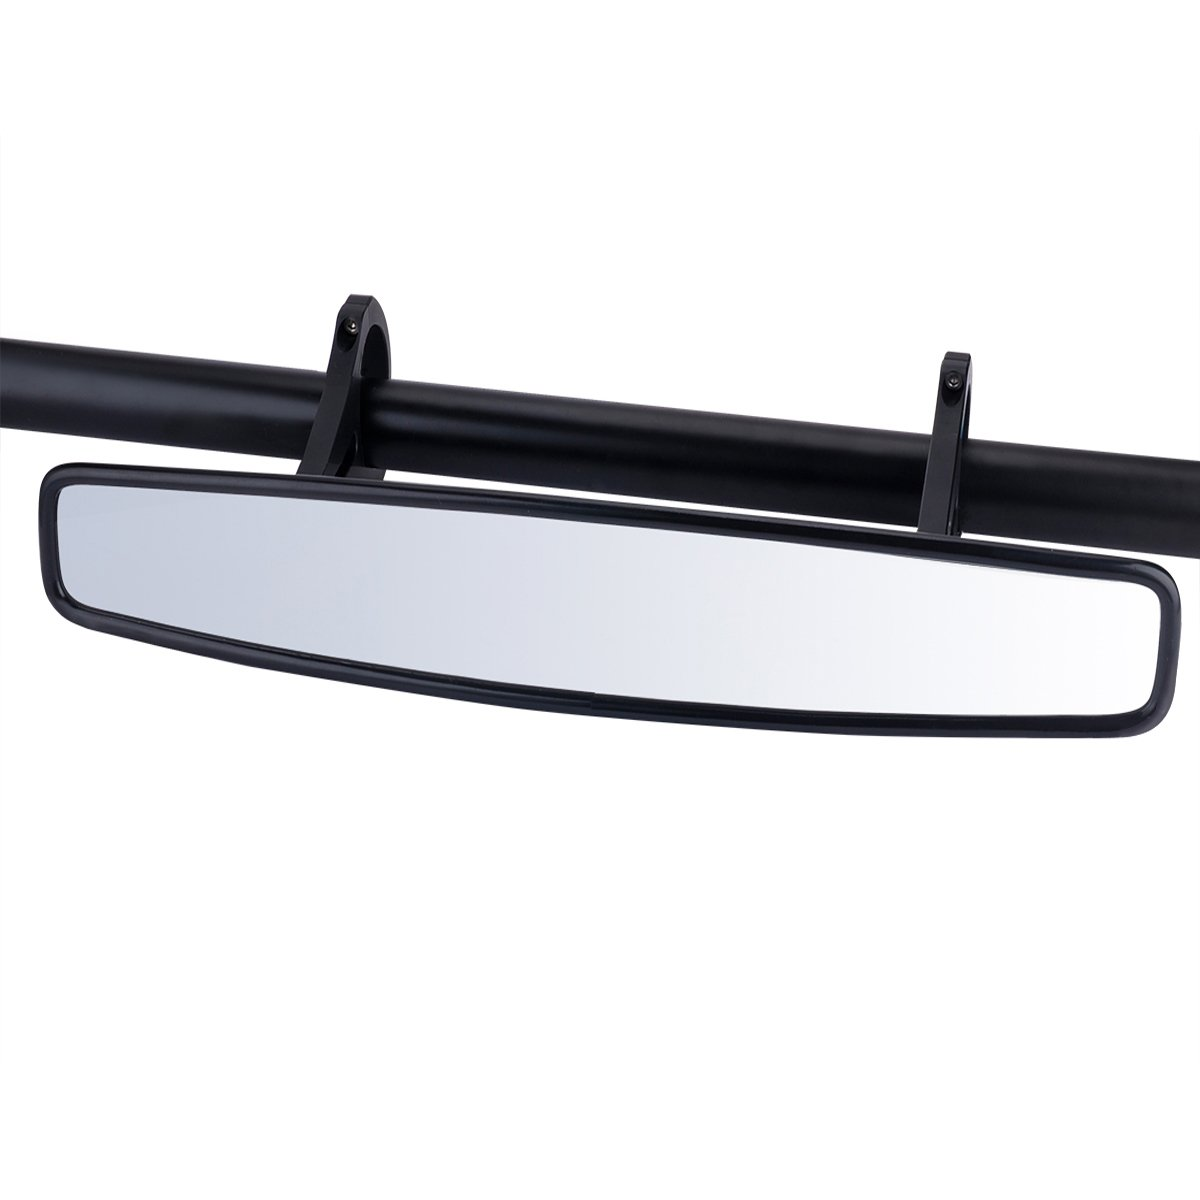 15'' Wide Angle UTV Rear View Race Mirror with Anti-Scratch Shatterproof Glass, Moveland Convex Mirror with 1.75-inch Clamp for Polaris RZR 800 1000 S 900 XP 1000 and More by moveland (Image #1)